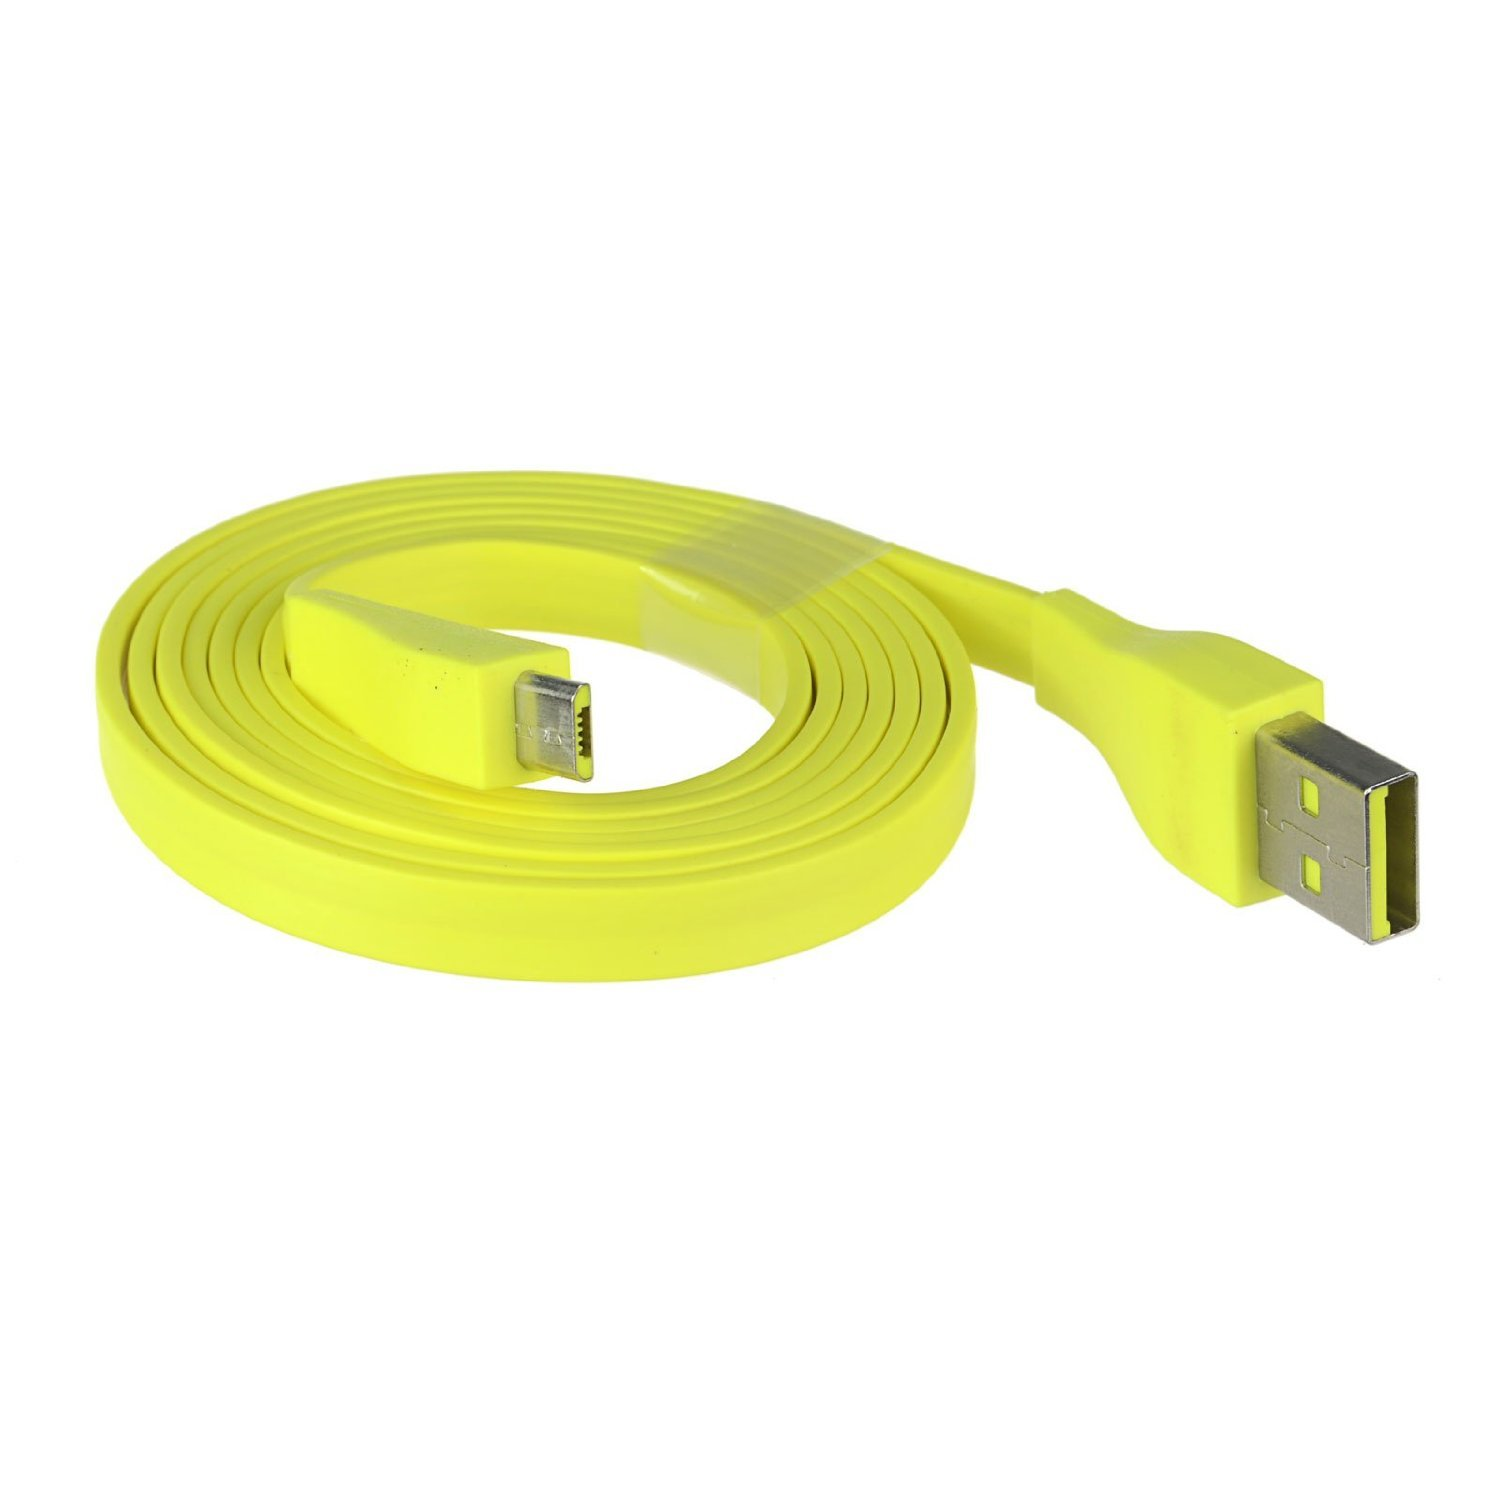 Logitech UE BOOM Bluetooth Speaker Micro USB Cable 22AWG 1.2M 4ft Max 2.5A Yellow